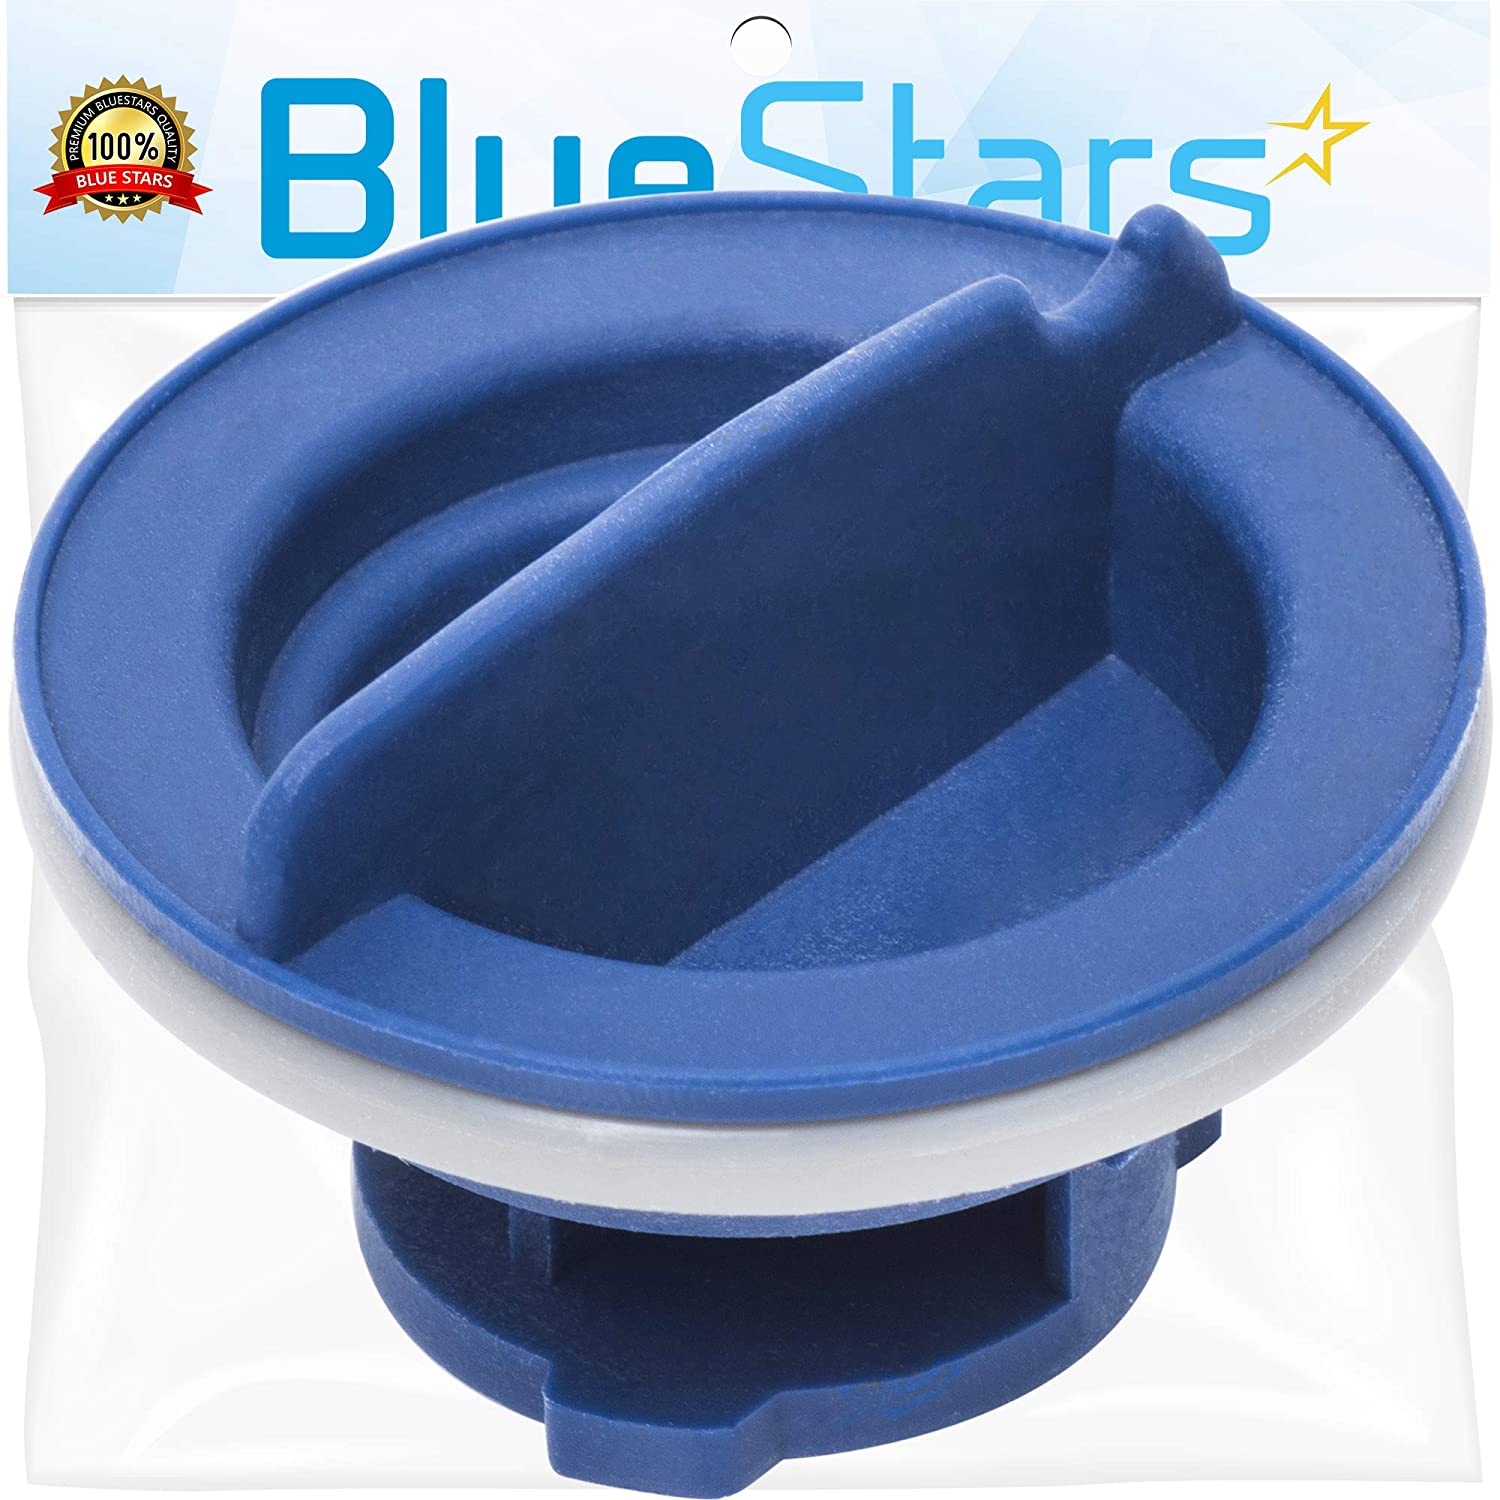 Ultra Durable W10077881 Dishwasher Rinse Aid Cap Replacement Part by Blue Stars – Exact Fit For KitchenAid & Whirlpool Dishwashers